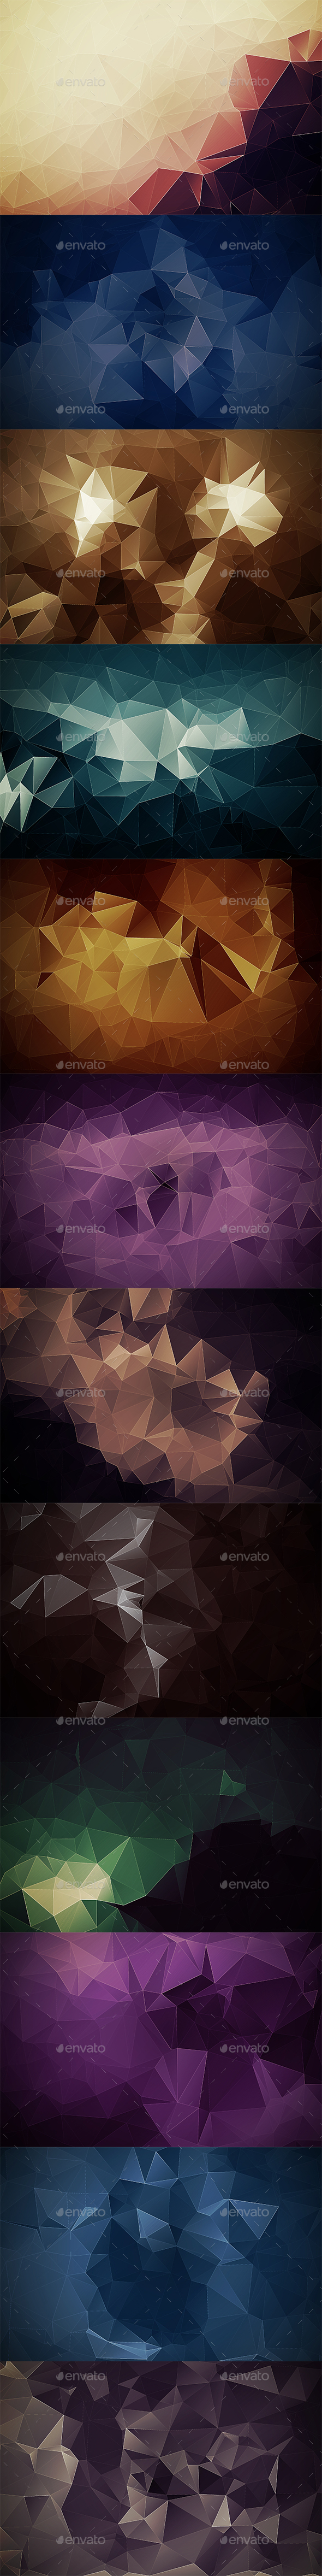 Abstract Polygonal Backgrounds Vol8 - Abstract Backgrounds